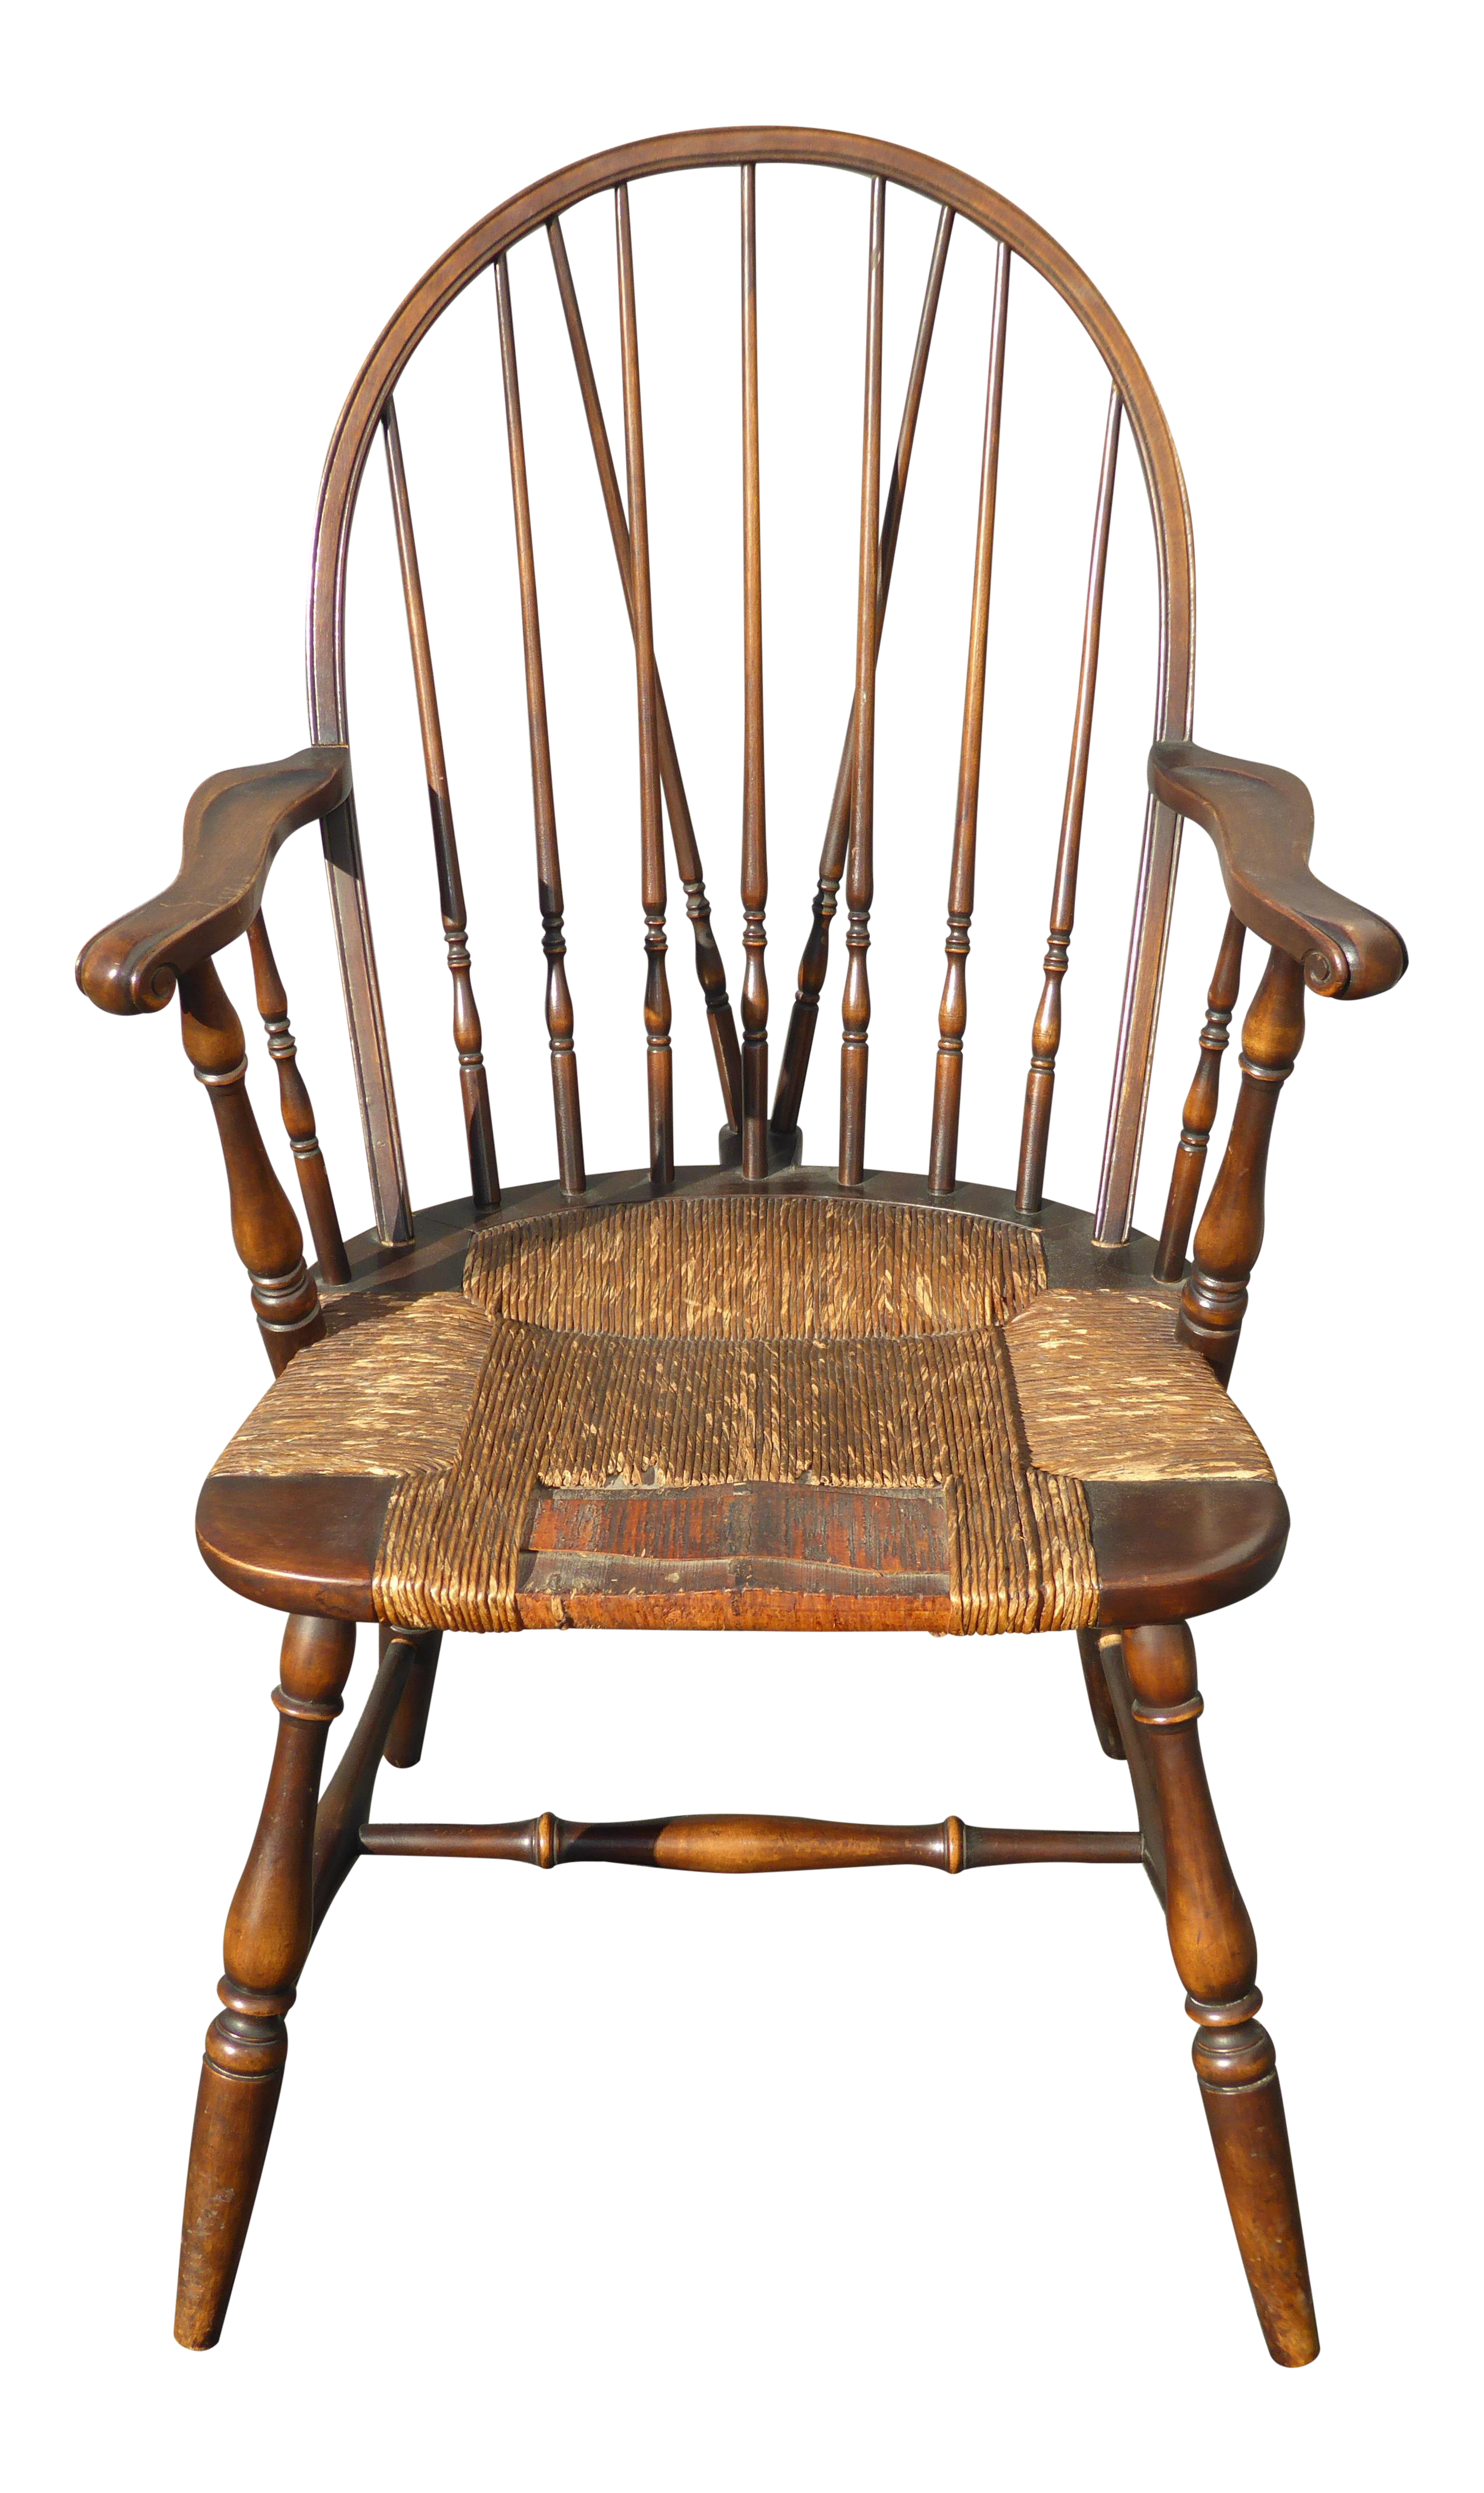 B&S Co Solid Wood Rush Seat Rustic Windsor Arm Chair on Chairish